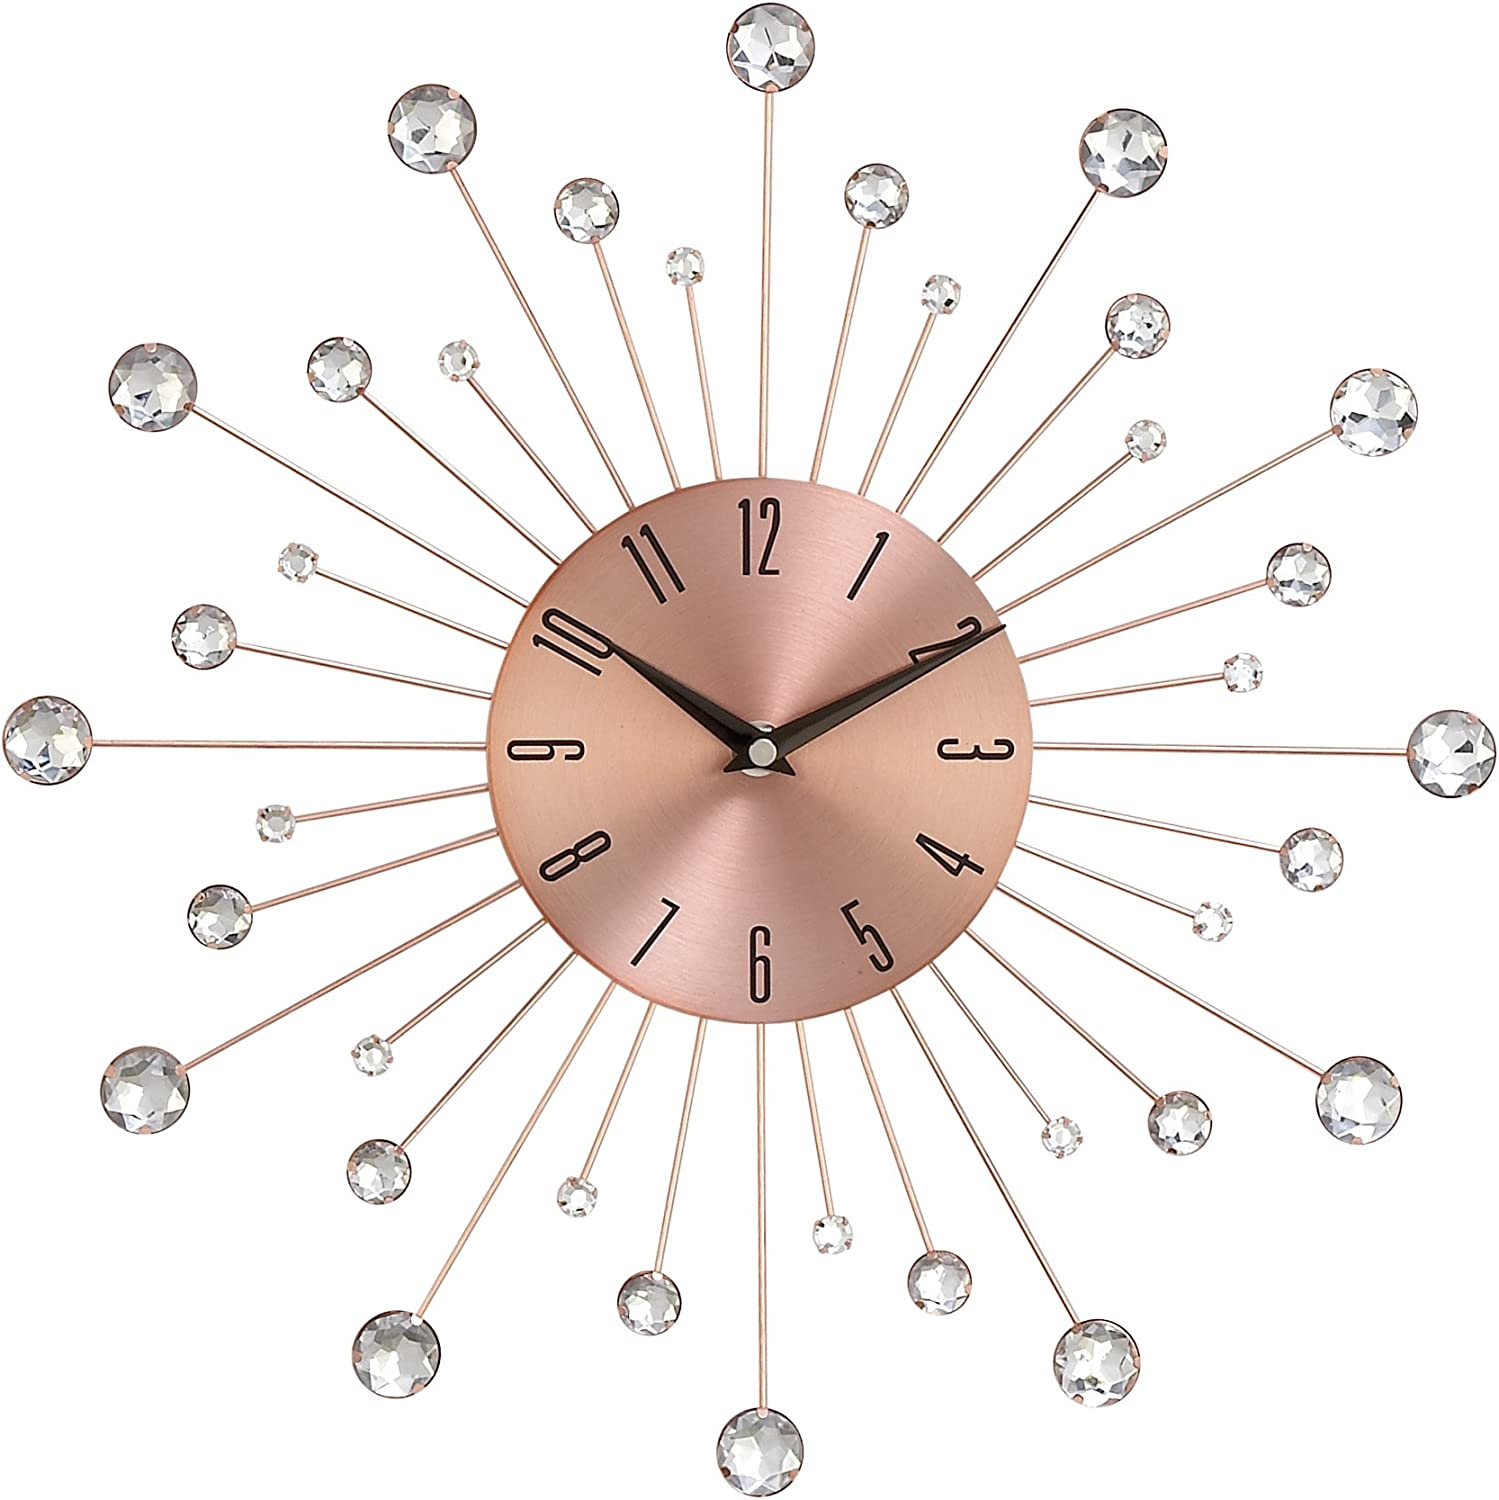 Amazon Com Deco 79 85517 Wall Clock With Clear Crystal Accents 15 Round Iron Burst Design Diameter Copper Black Garden Outdoor